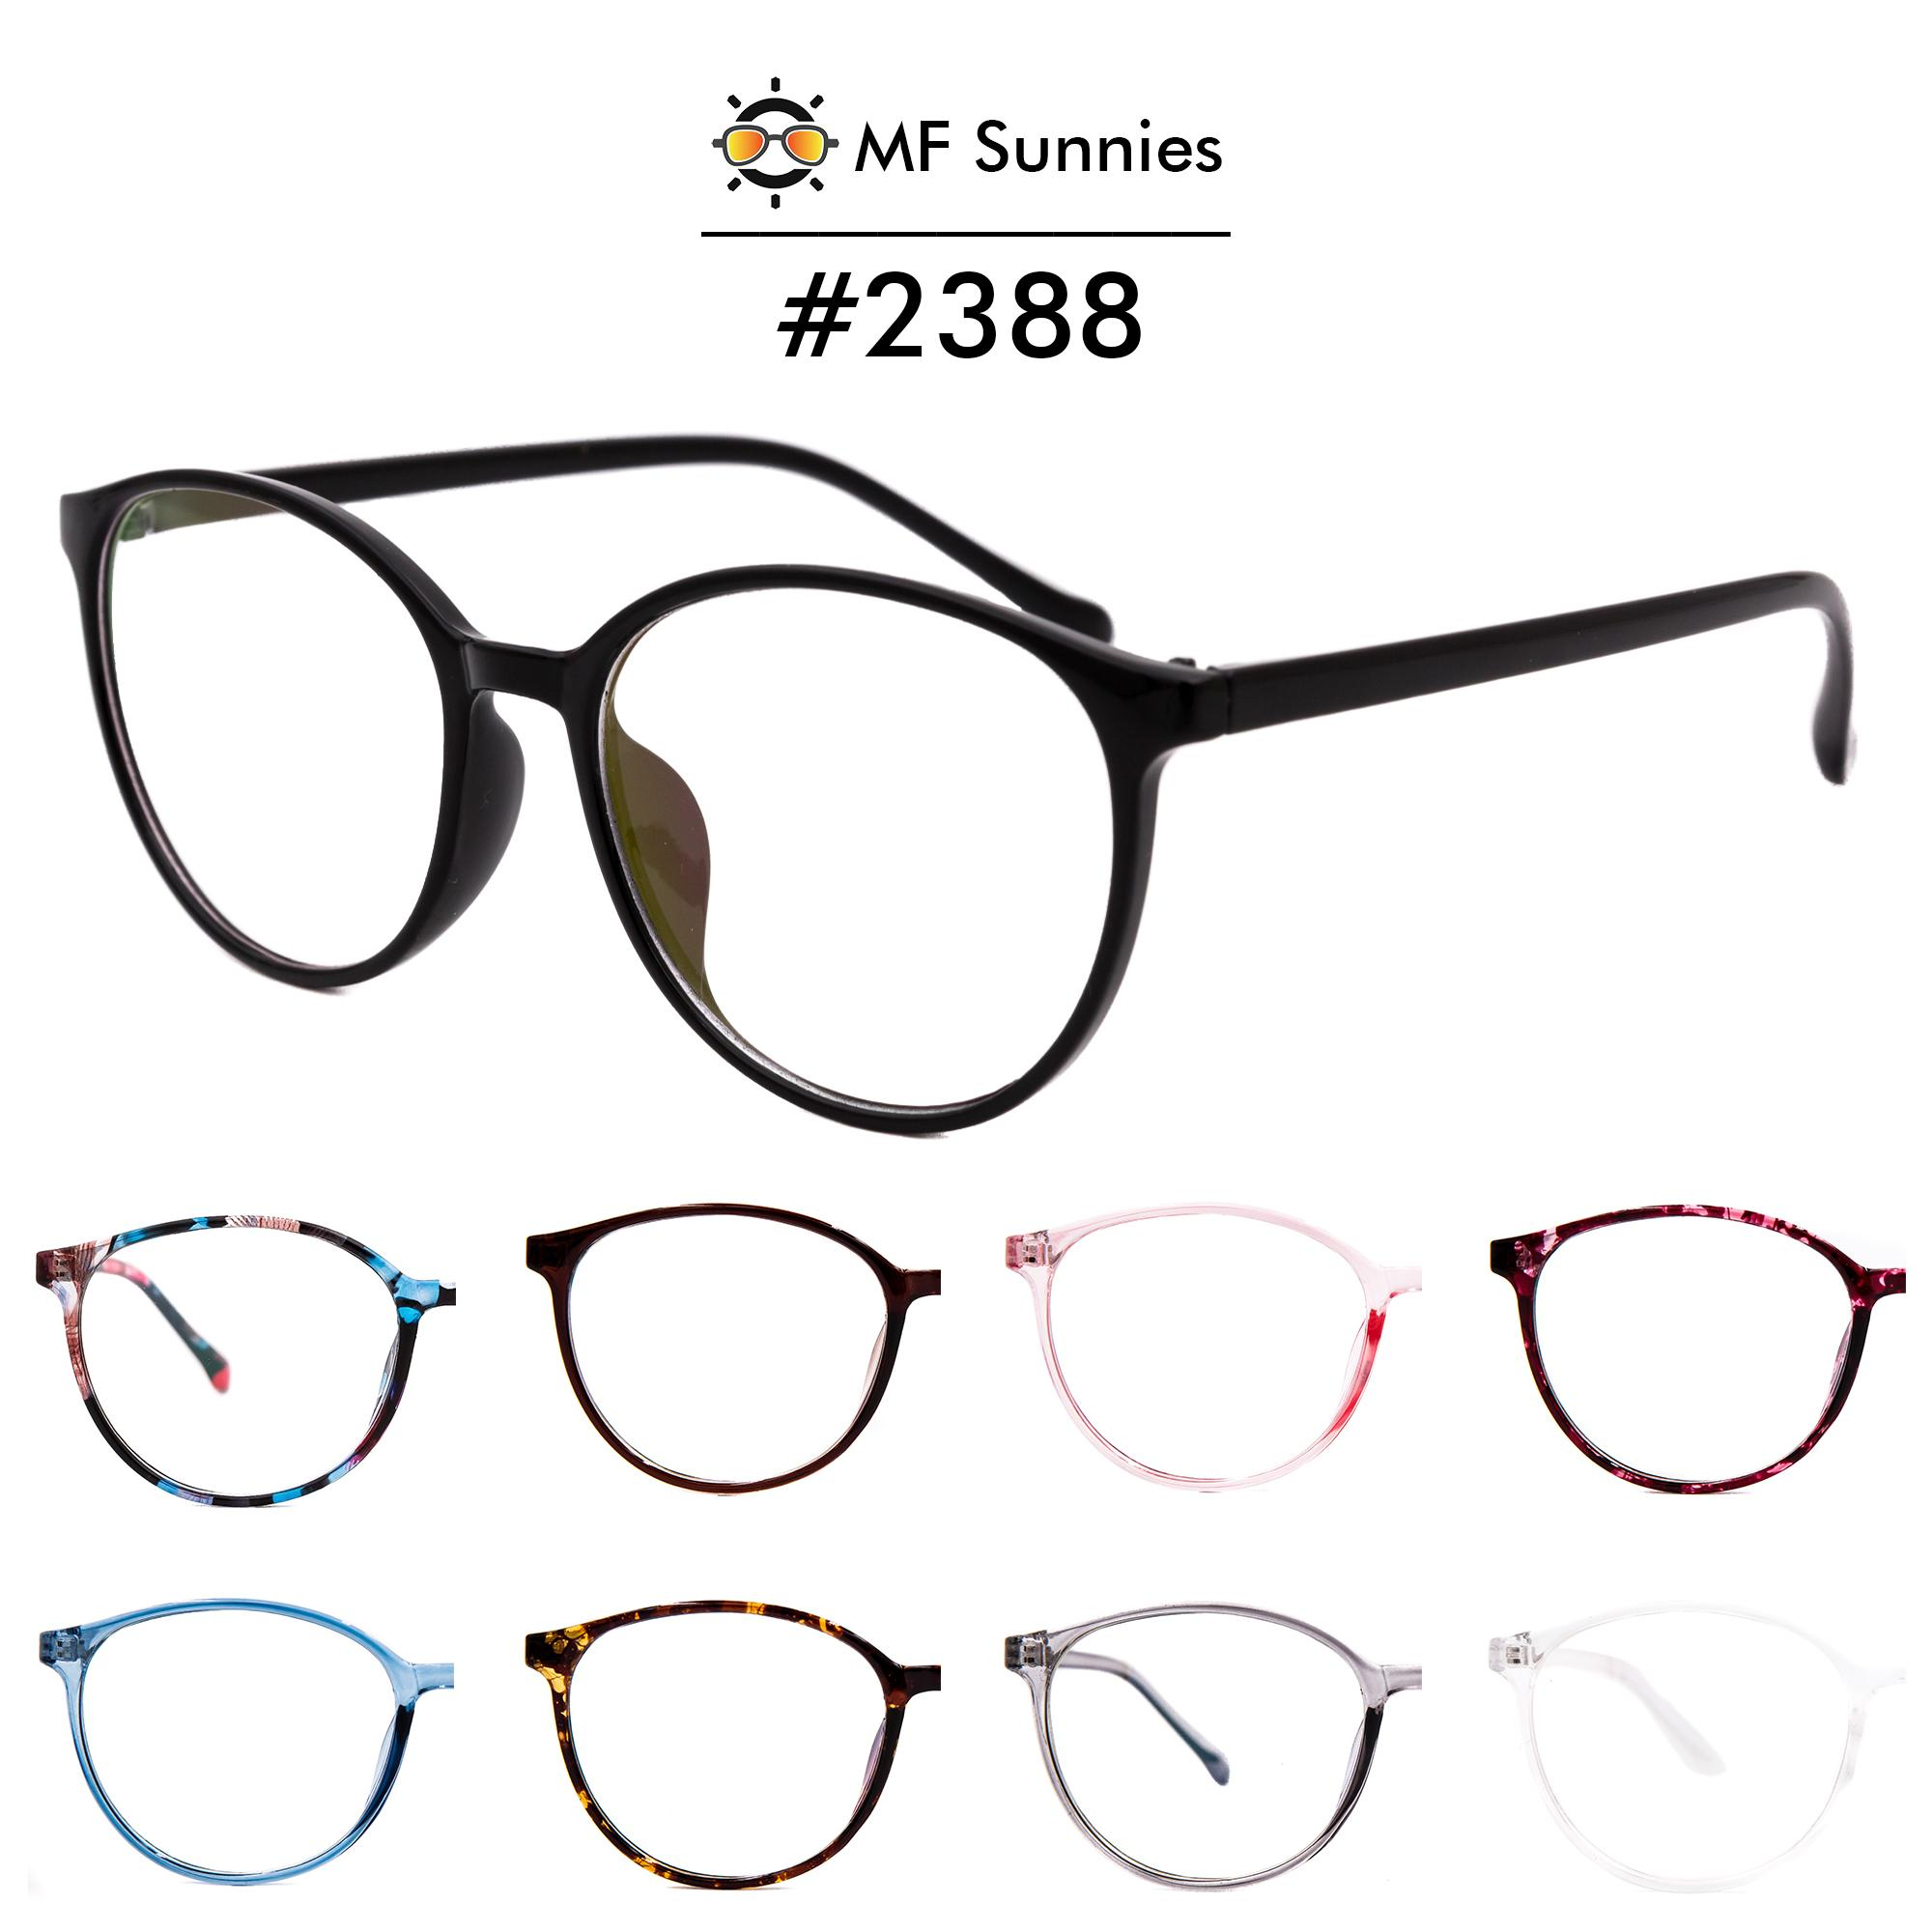 82f438cfe57d MFSunnies Computer Anti-Radiation Blue light Unisex eyewear Premium Acetate  optical frame Metal hinges